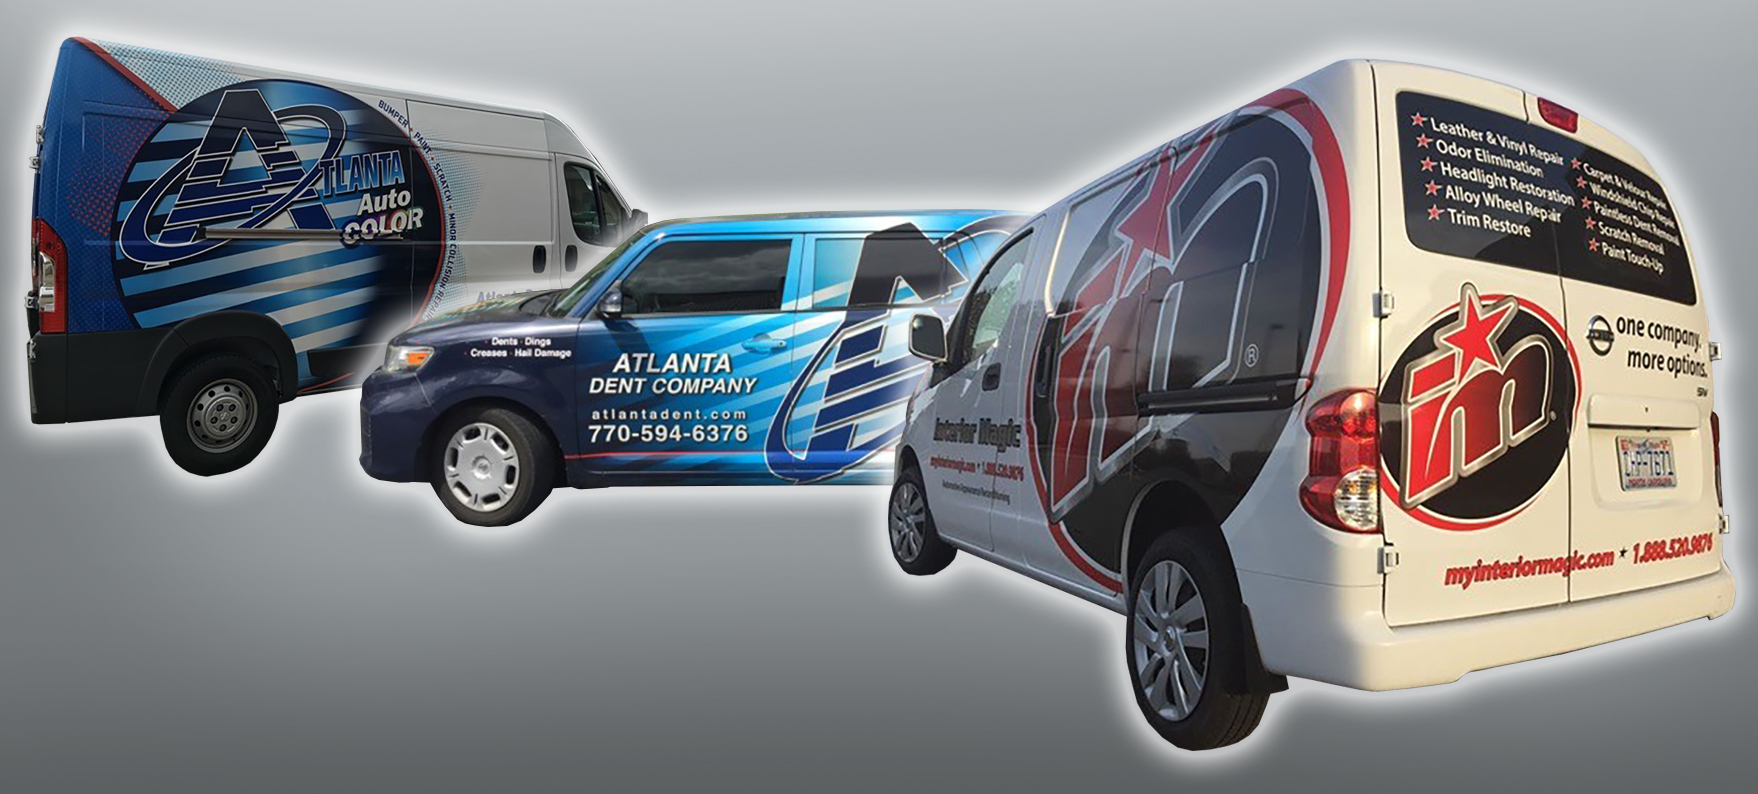 Fleet of Vehicles Atlanta Dent, Atlanta Auto Color, Interior Magic